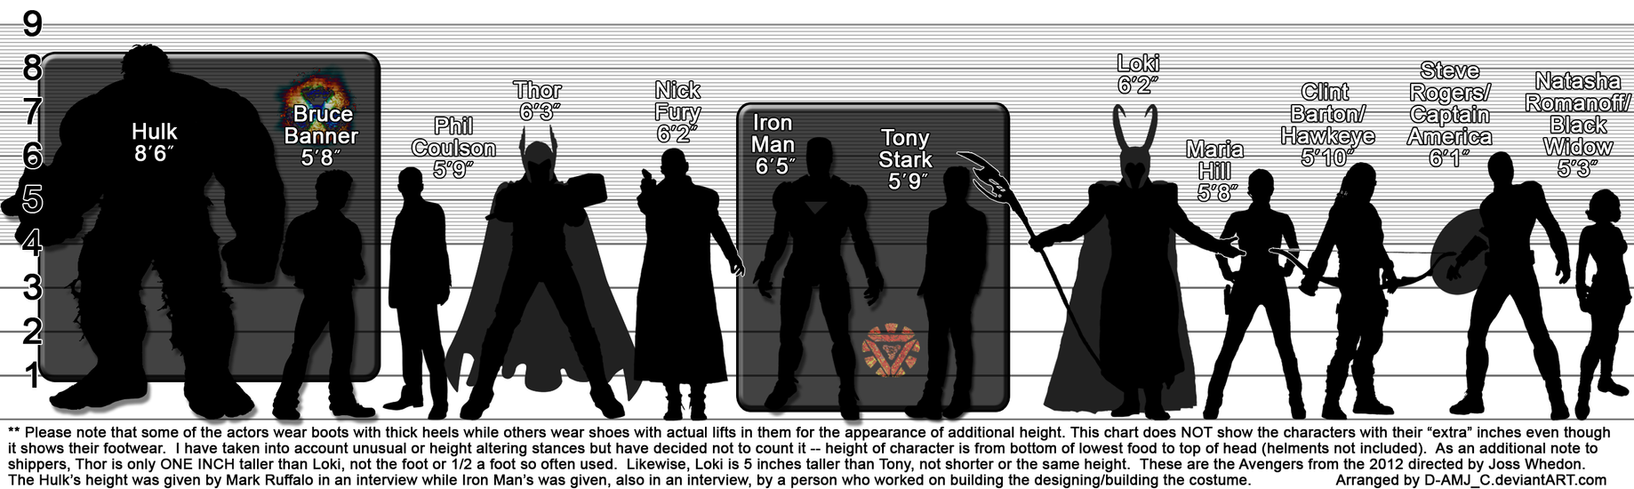 the avengers 2012 height chart corrected by d amj c on deviantart. Black Bedroom Furniture Sets. Home Design Ideas